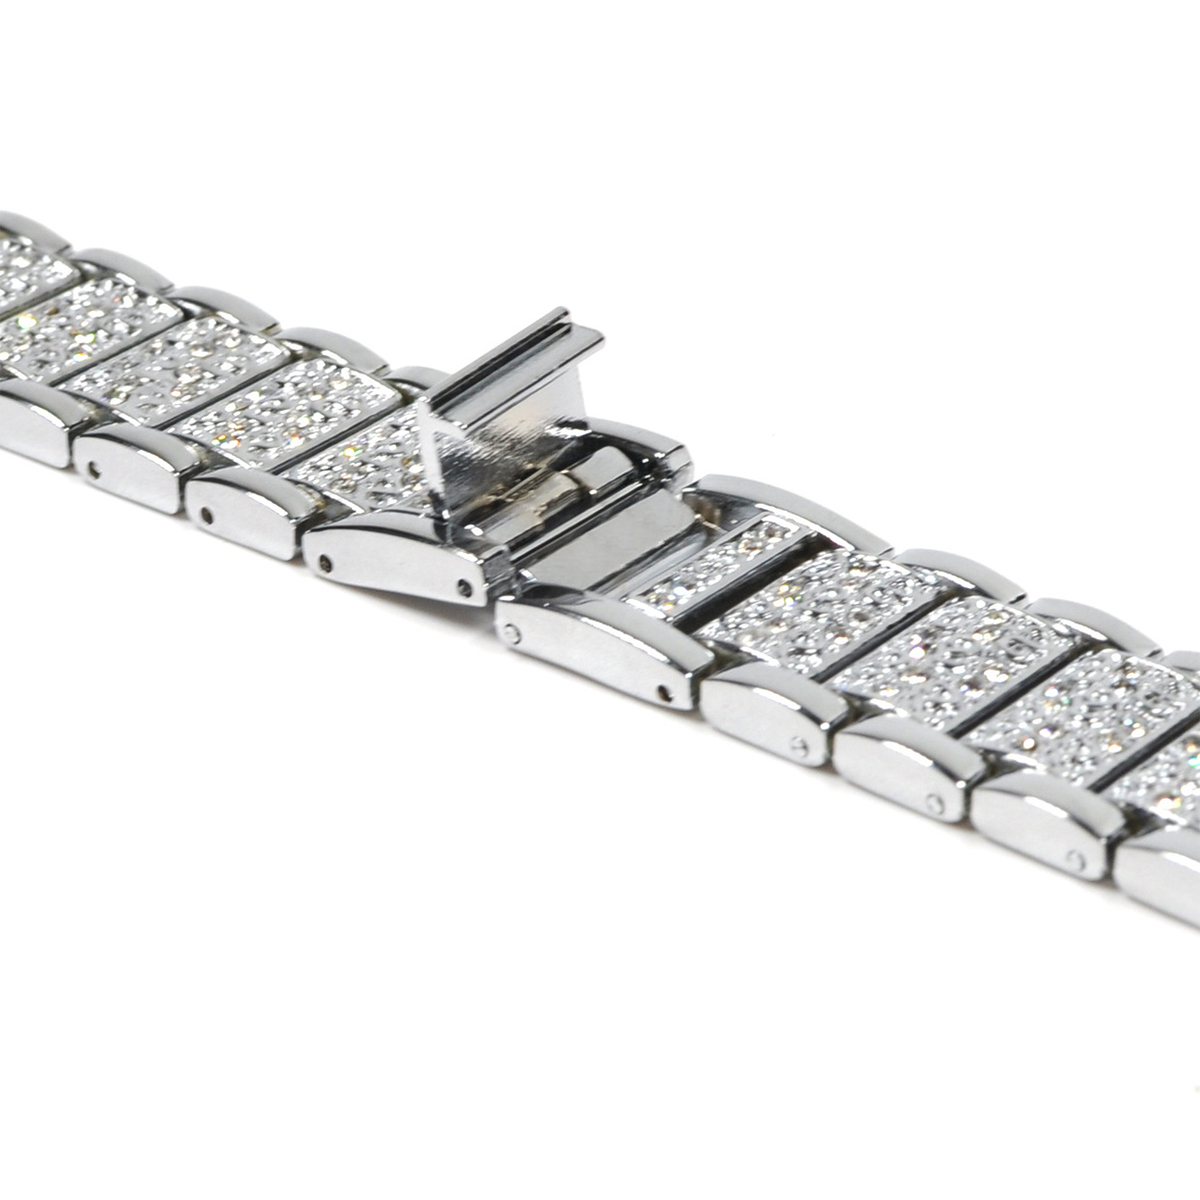 Link Bracelet Watchband Strap Stainless Steel Metal With Frame for Fitbit Blaze